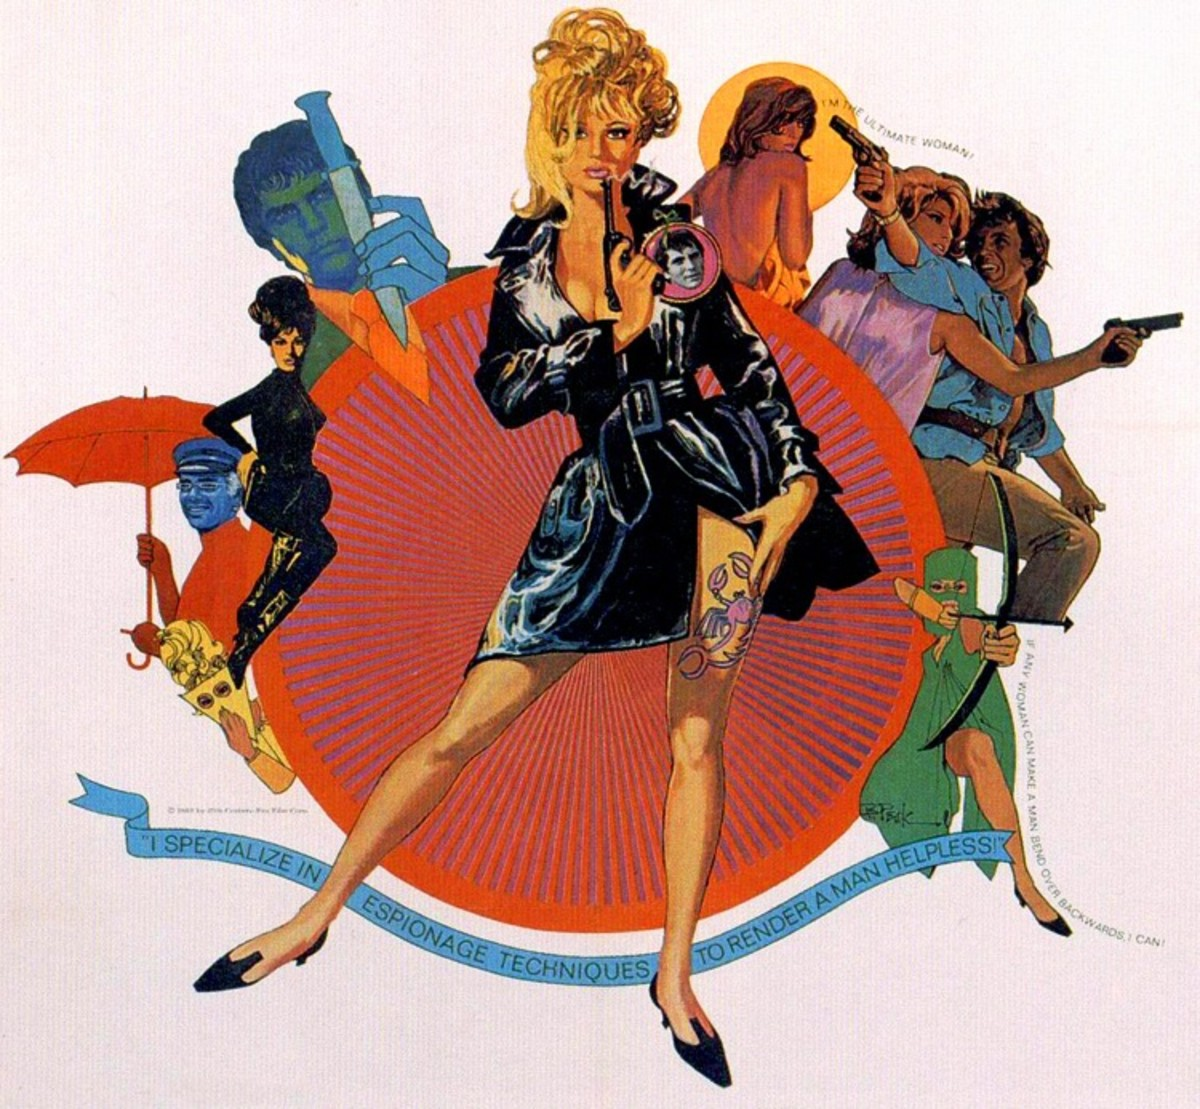 Modesty Blaise (1966) art by Bob Peak